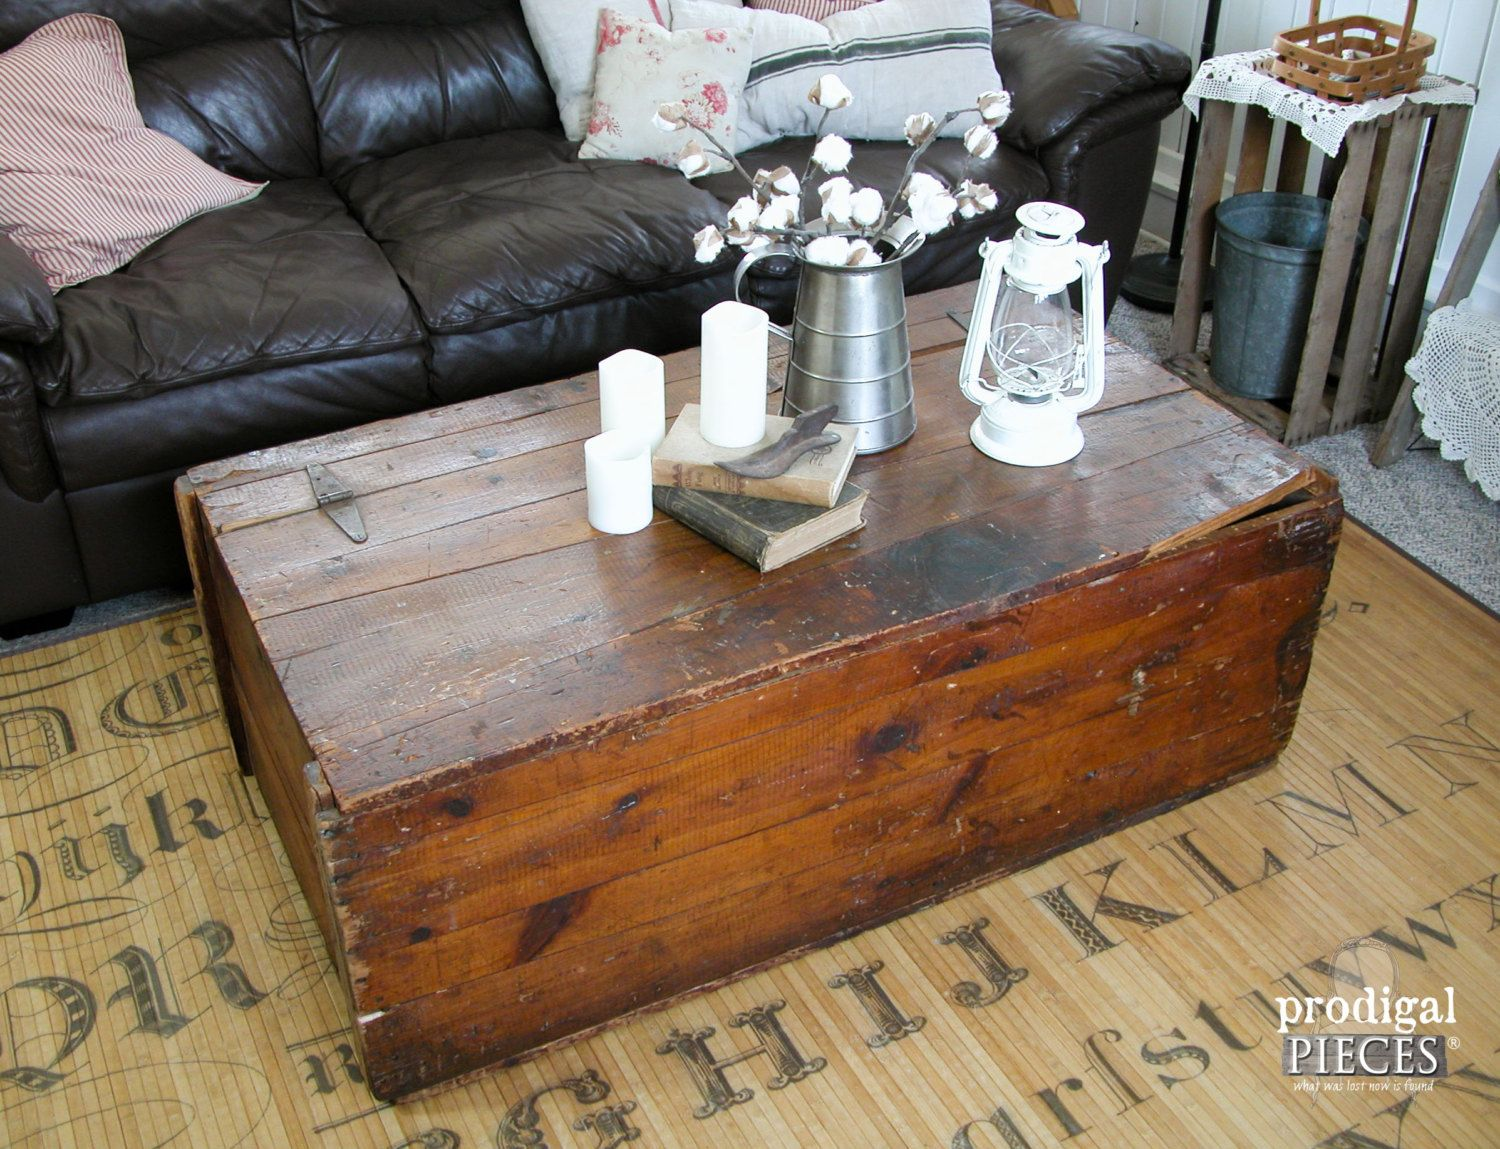 Antique ammunition freight cargo crate utilitarian coffee table antique ammunition freight cargo crate utilitarian coffee table or storage cupboard industrial farmhouse cottage geotapseo Gallery